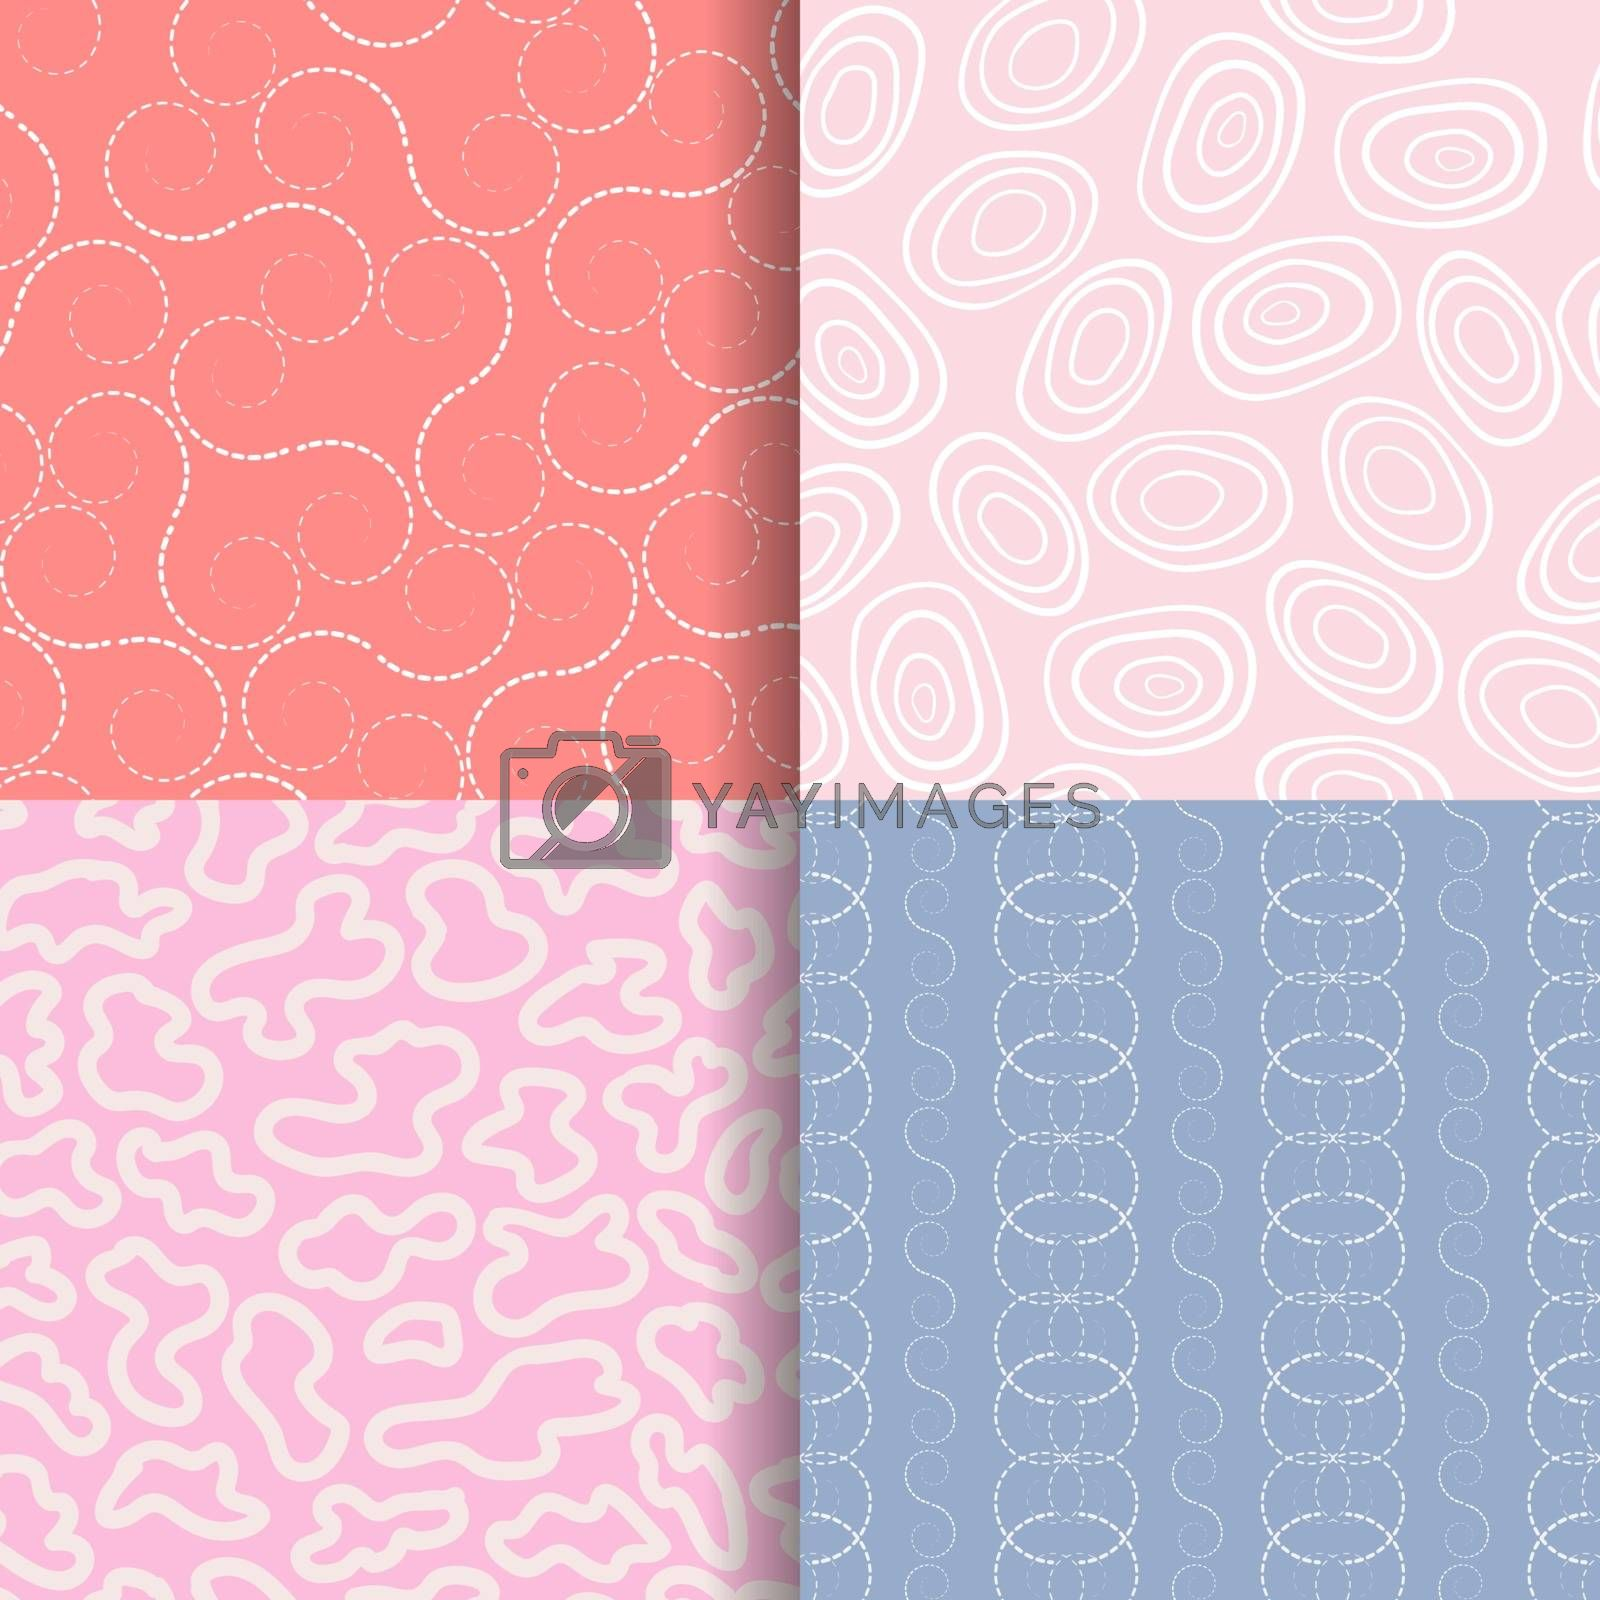 4 hand drawn seamless pattern set,for decorative,fashion,fabric,wallpaper and all print,vector illustration